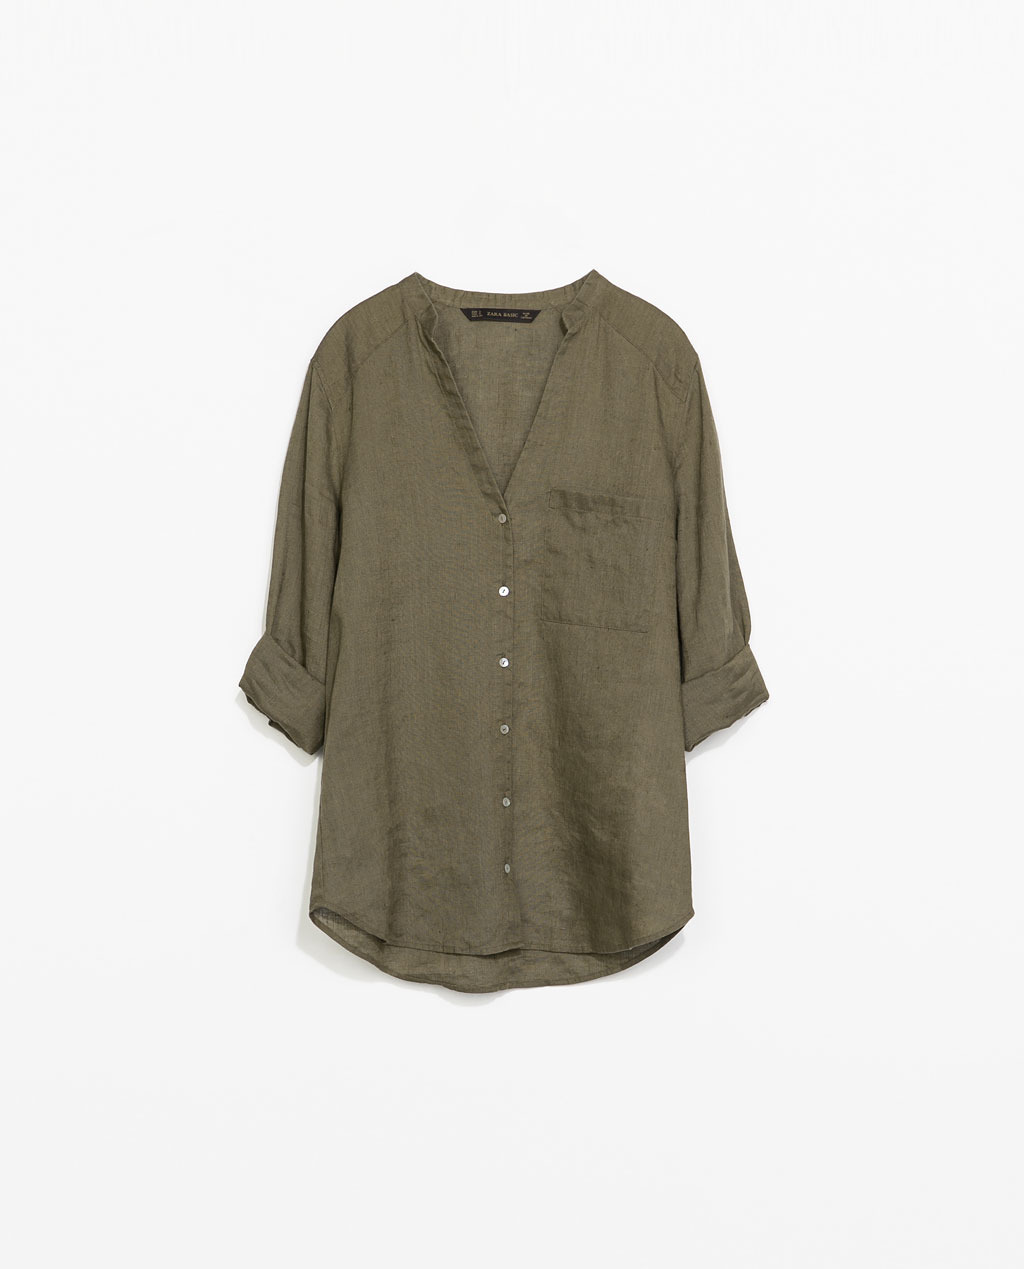 Linen Shirt - pattern: plain; length: below the bottom; style: shirt; predominant colour: khaki; occasions: casual, holiday, creative work; neckline: collarstand & mandarin with v-neck; fibres: linen - 100%; fit: loose; sleeve length: 3/4 length; sleeve style: standard; texture group: linen; pattern type: fabric; season: s/s 2014